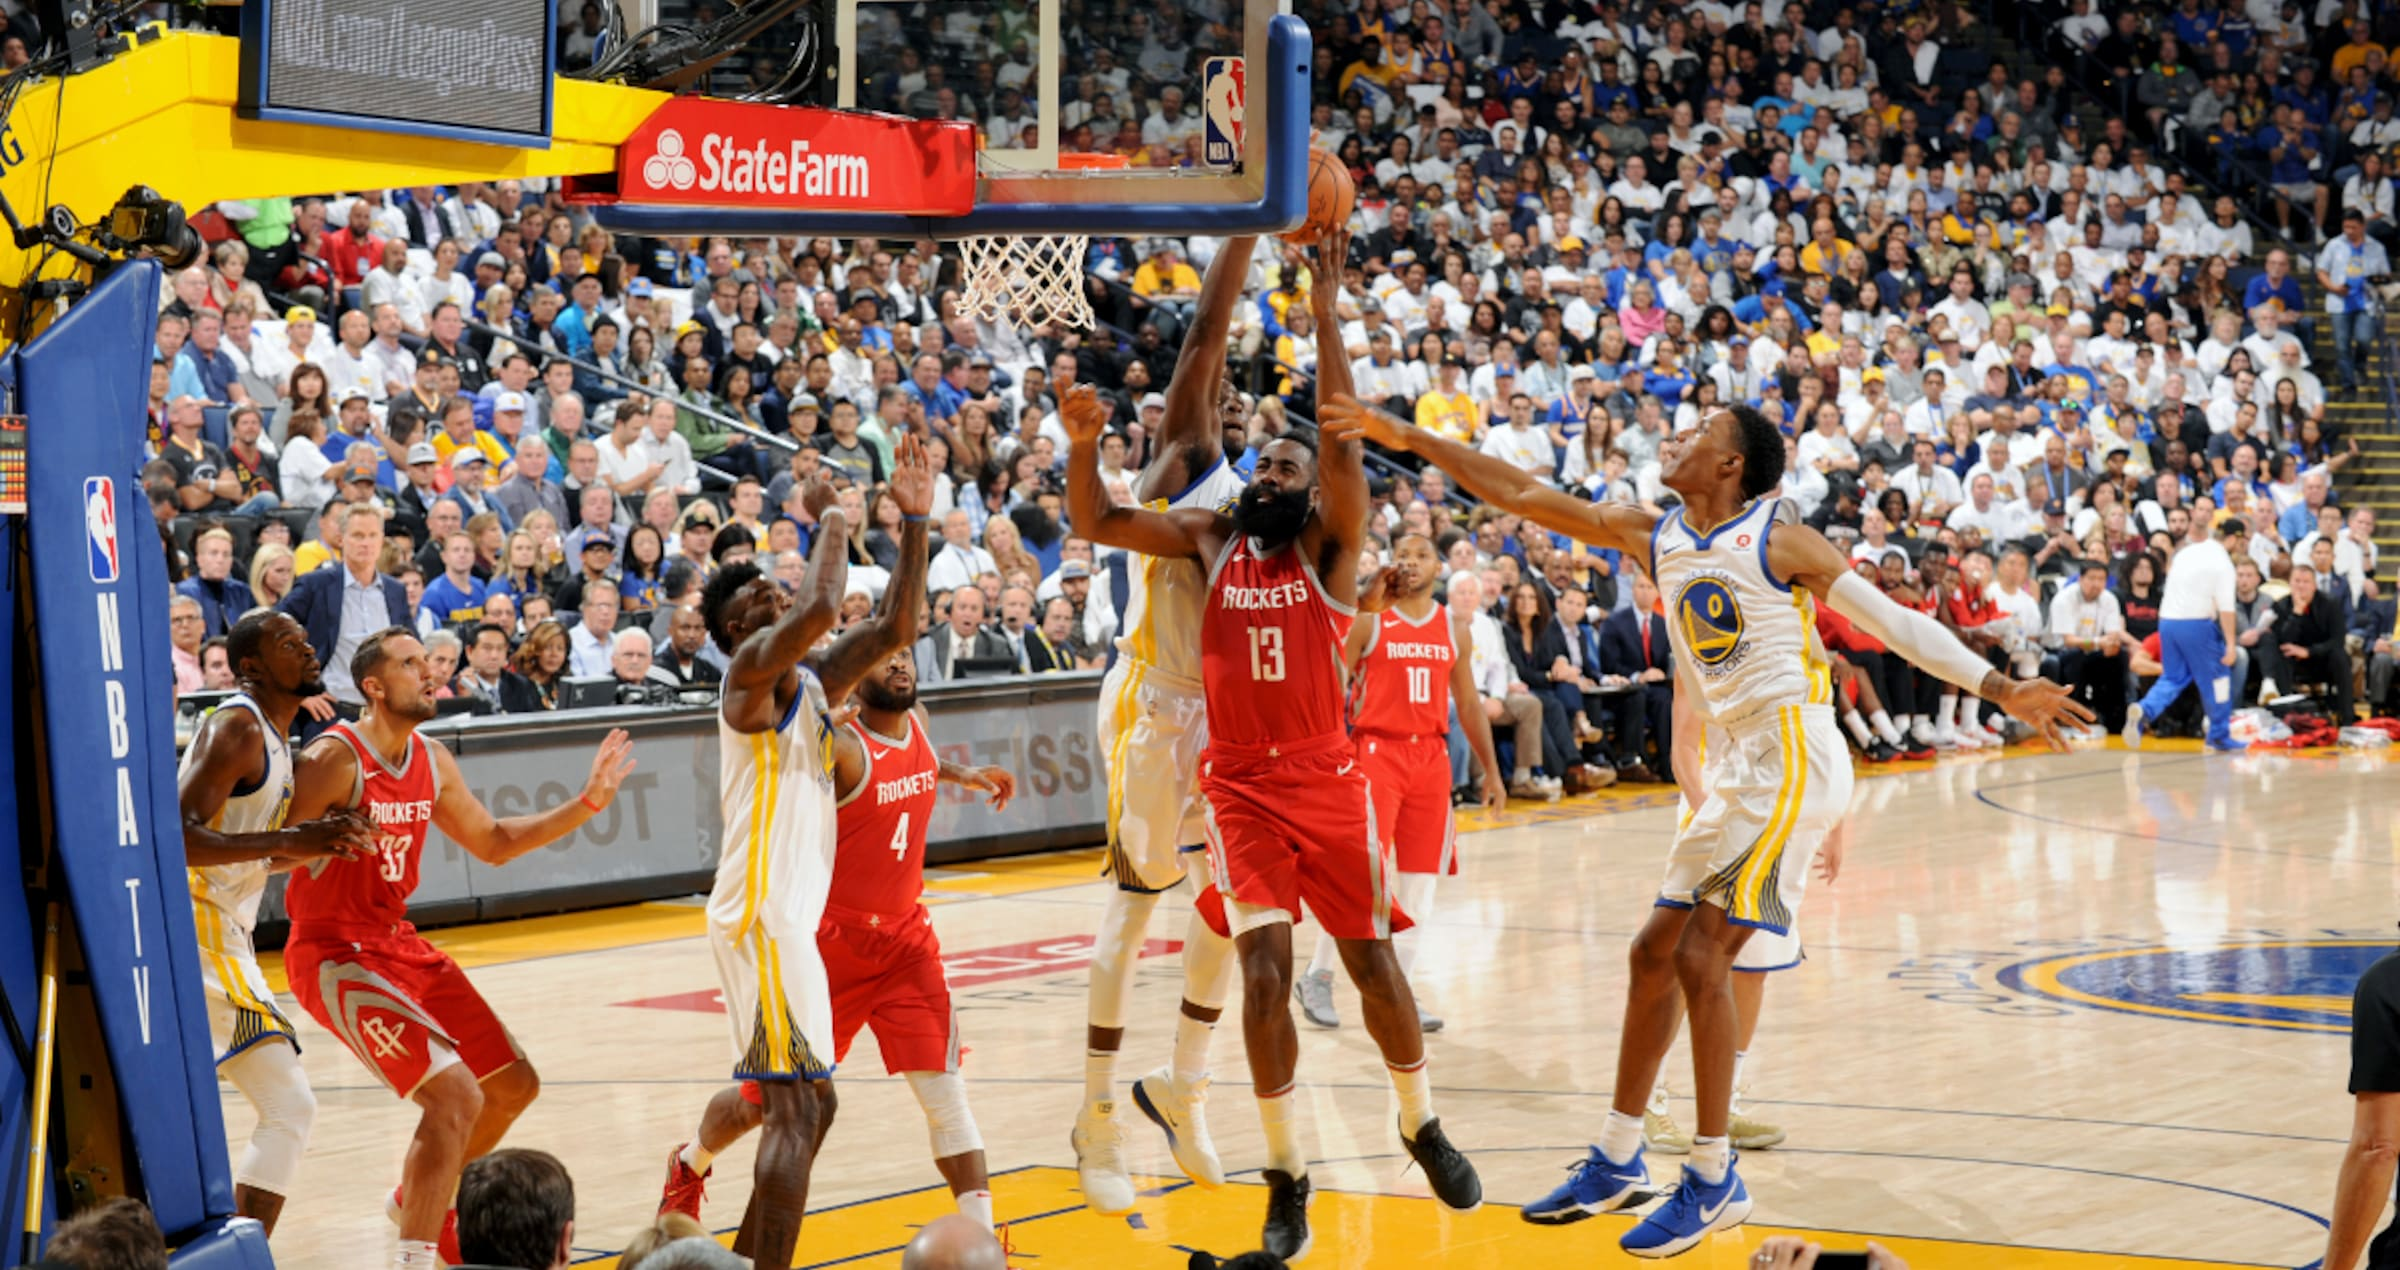 James Harden #13 of the Houston Rockets goes to the basket against the Golden State Warriors on October 17, 2017 at ORACLE Arena in Oakland, California.